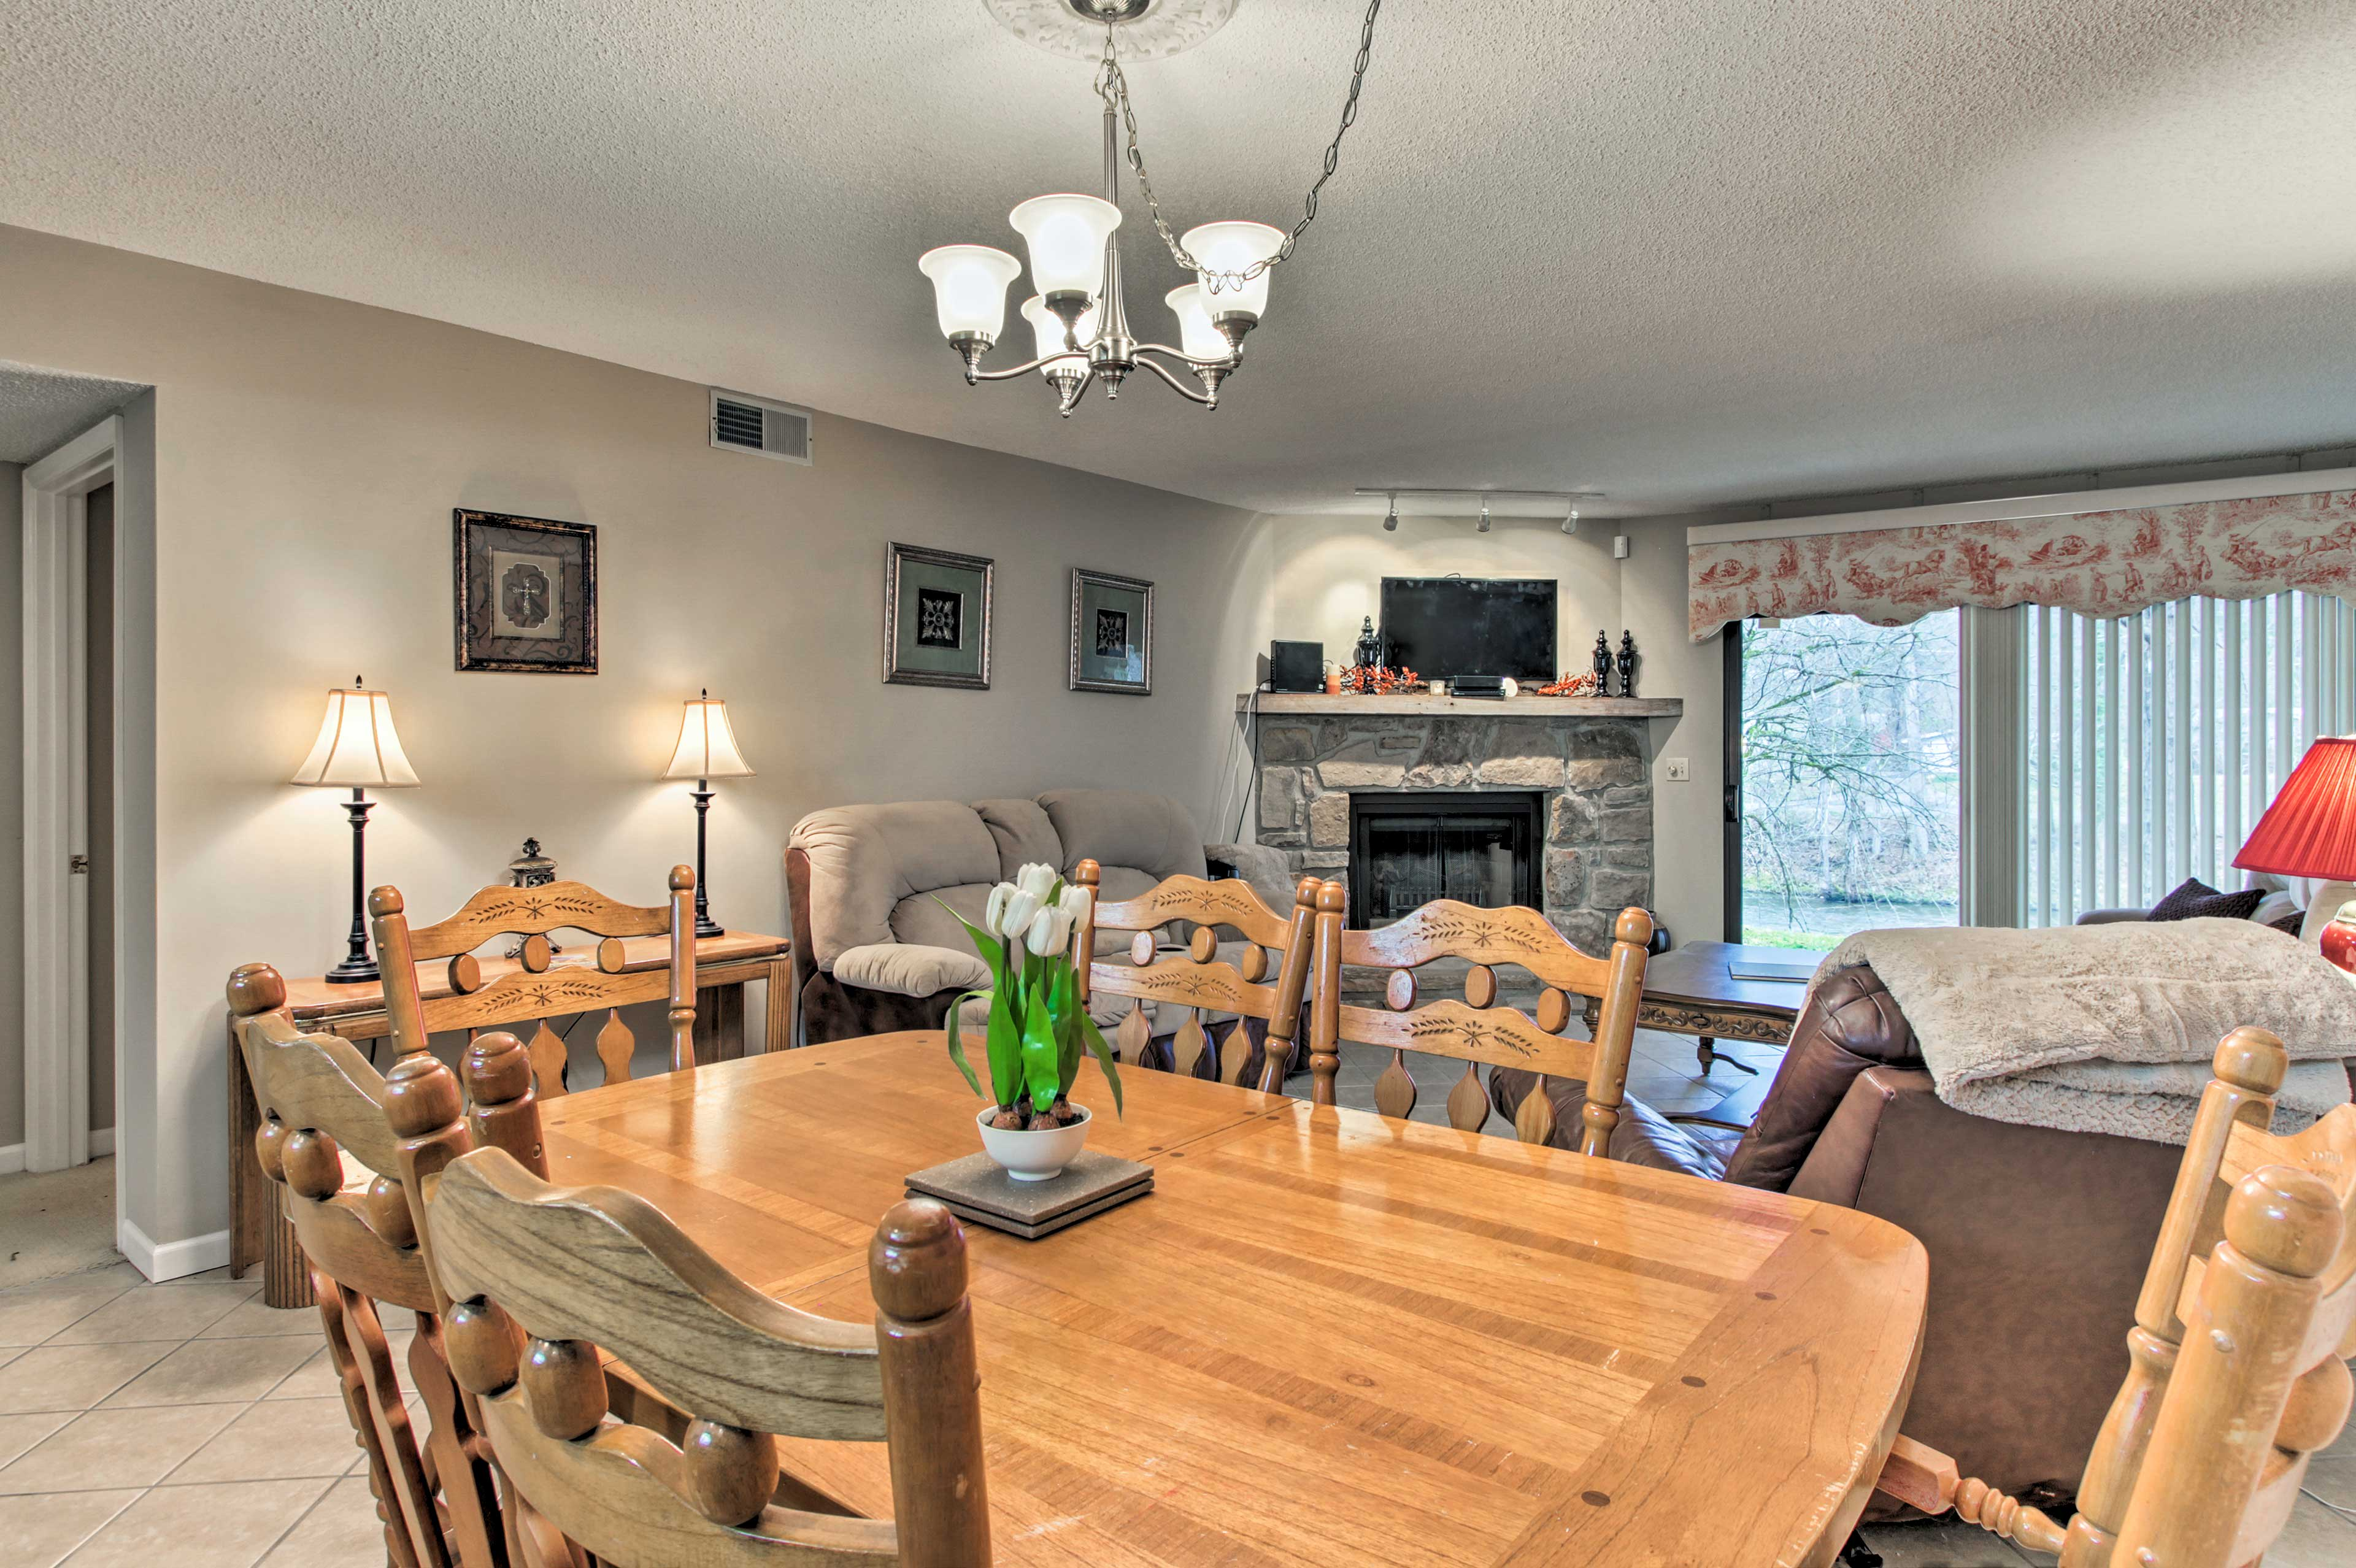 Discuss your plans while you eat around the 6-person dining table.